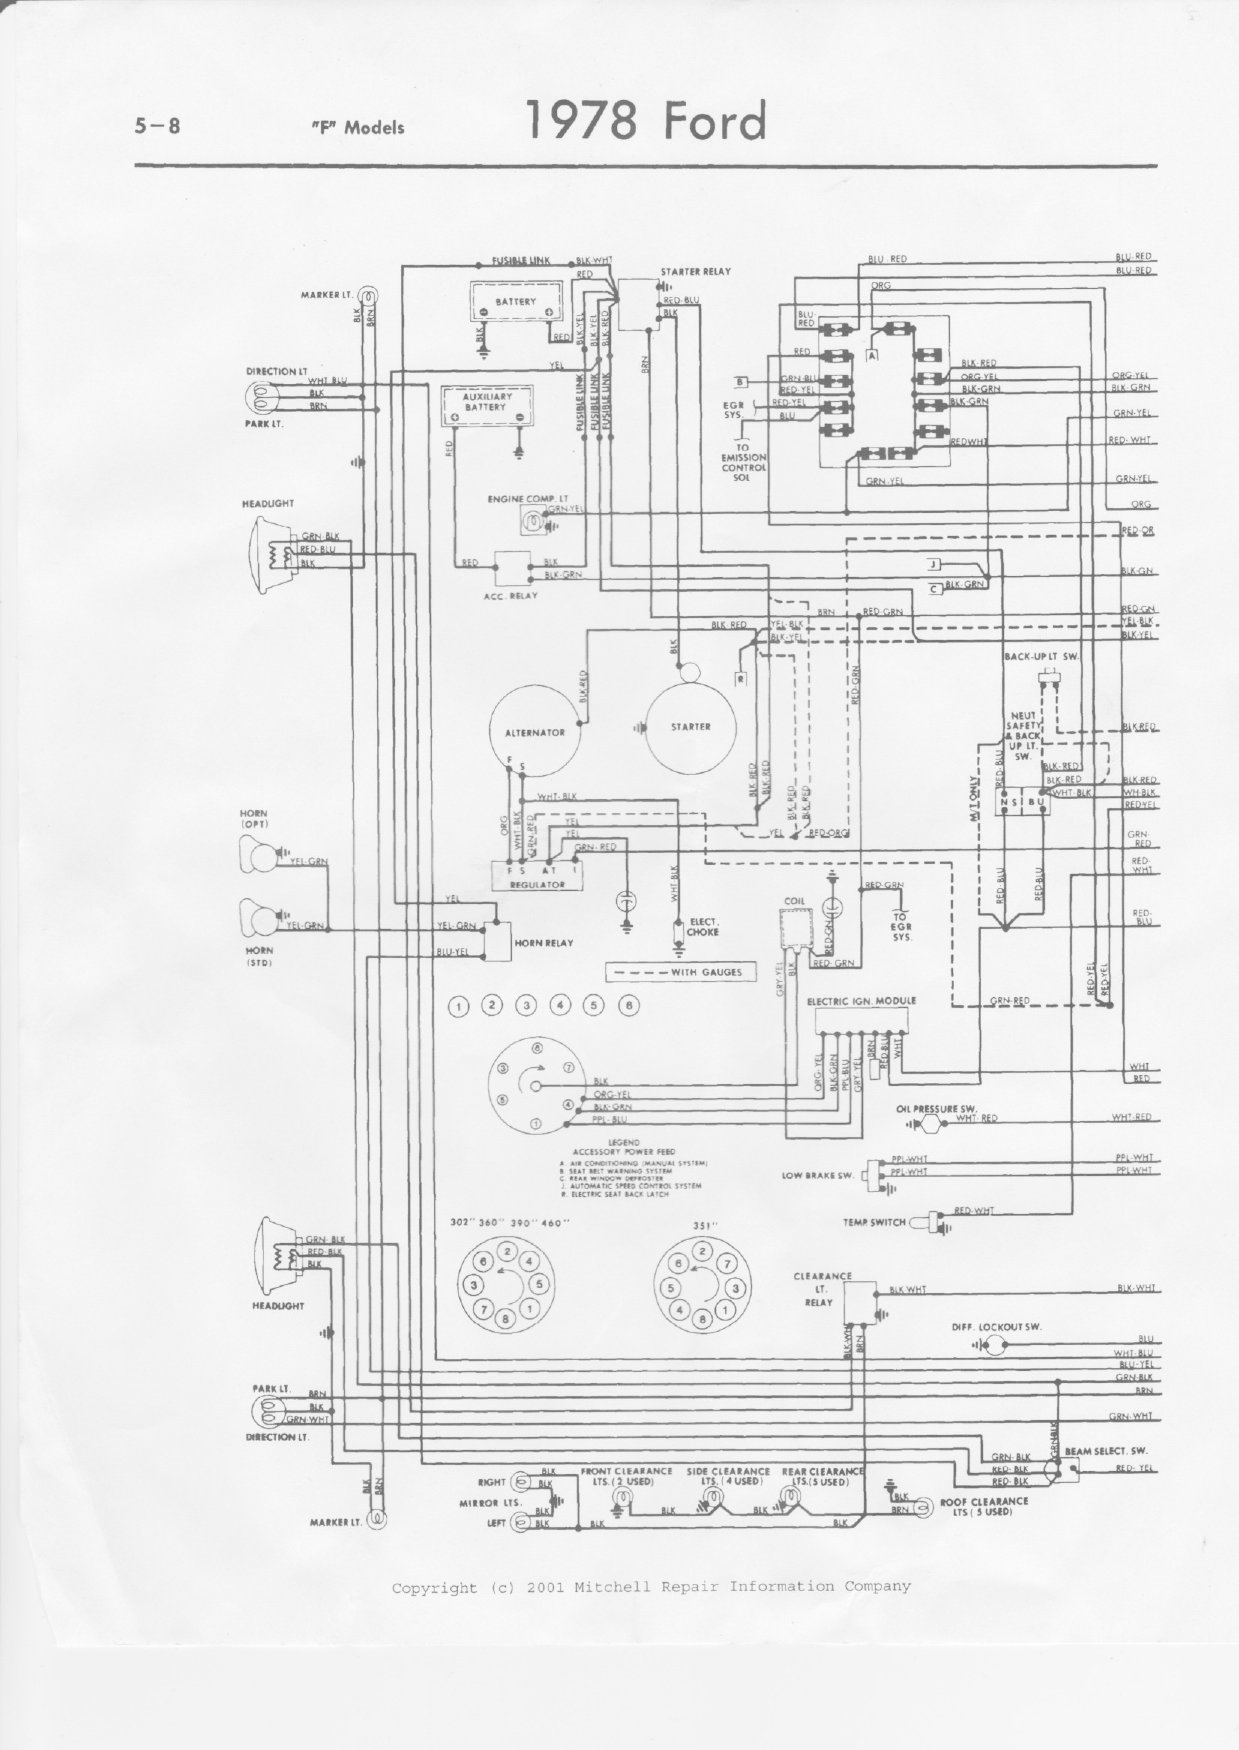 1976 F350 Ignition Wiring Problem - Ford Truck Enthusiasts ...